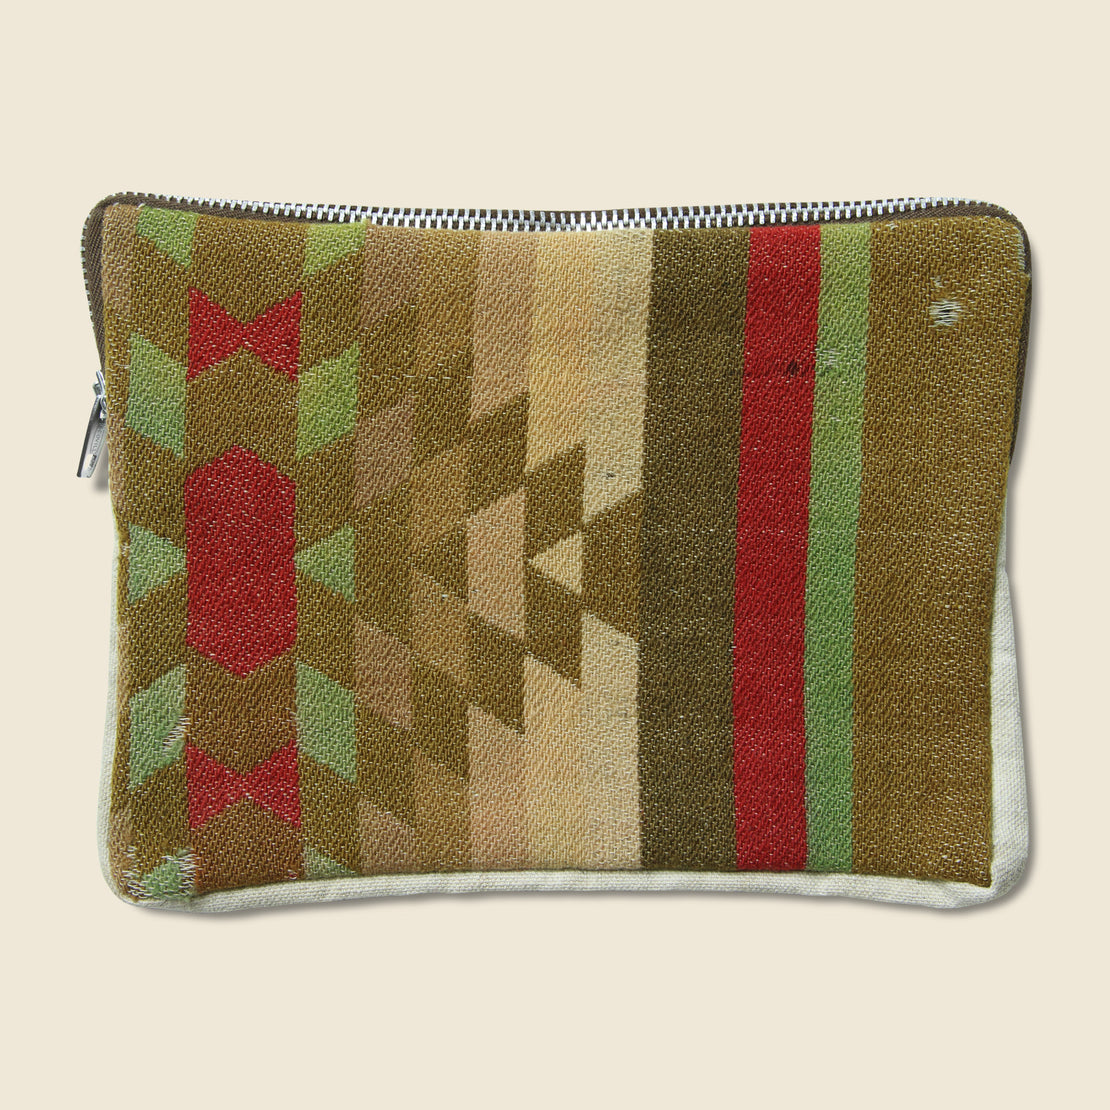 Tart Vintage Vintage Zipper Pouch - Red, Sage & Brown